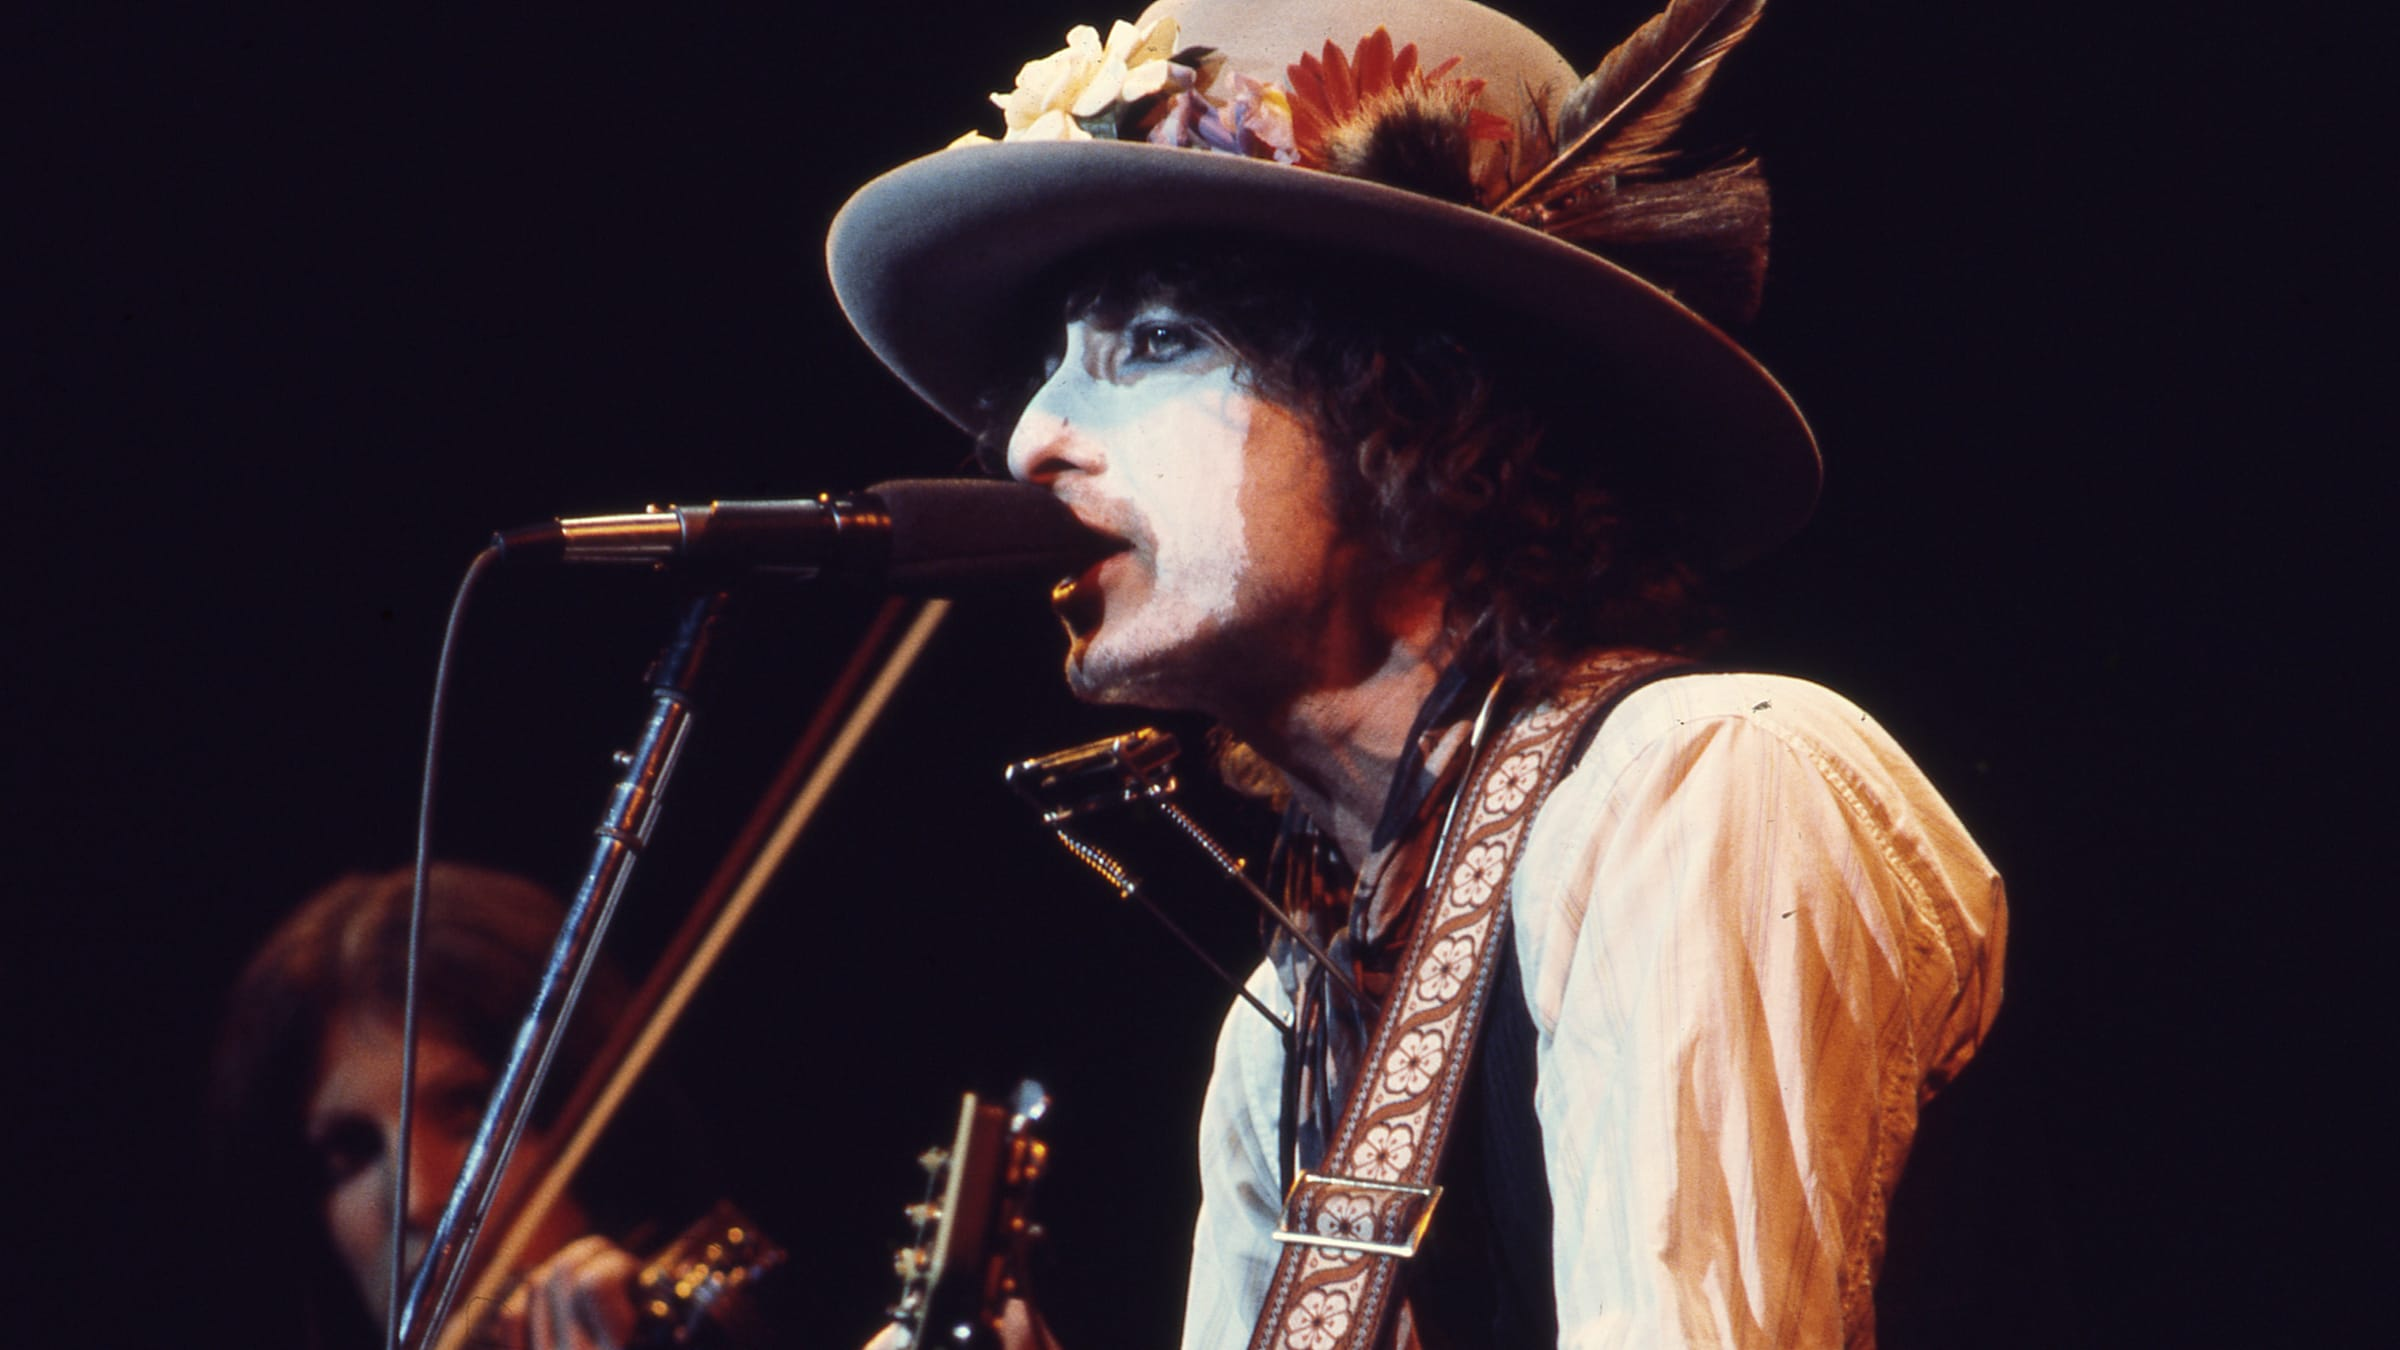 10 Things I Learned: <em>Rolling Thunder Revue: A Bob Dylan Story by Martin Scorsese</em>